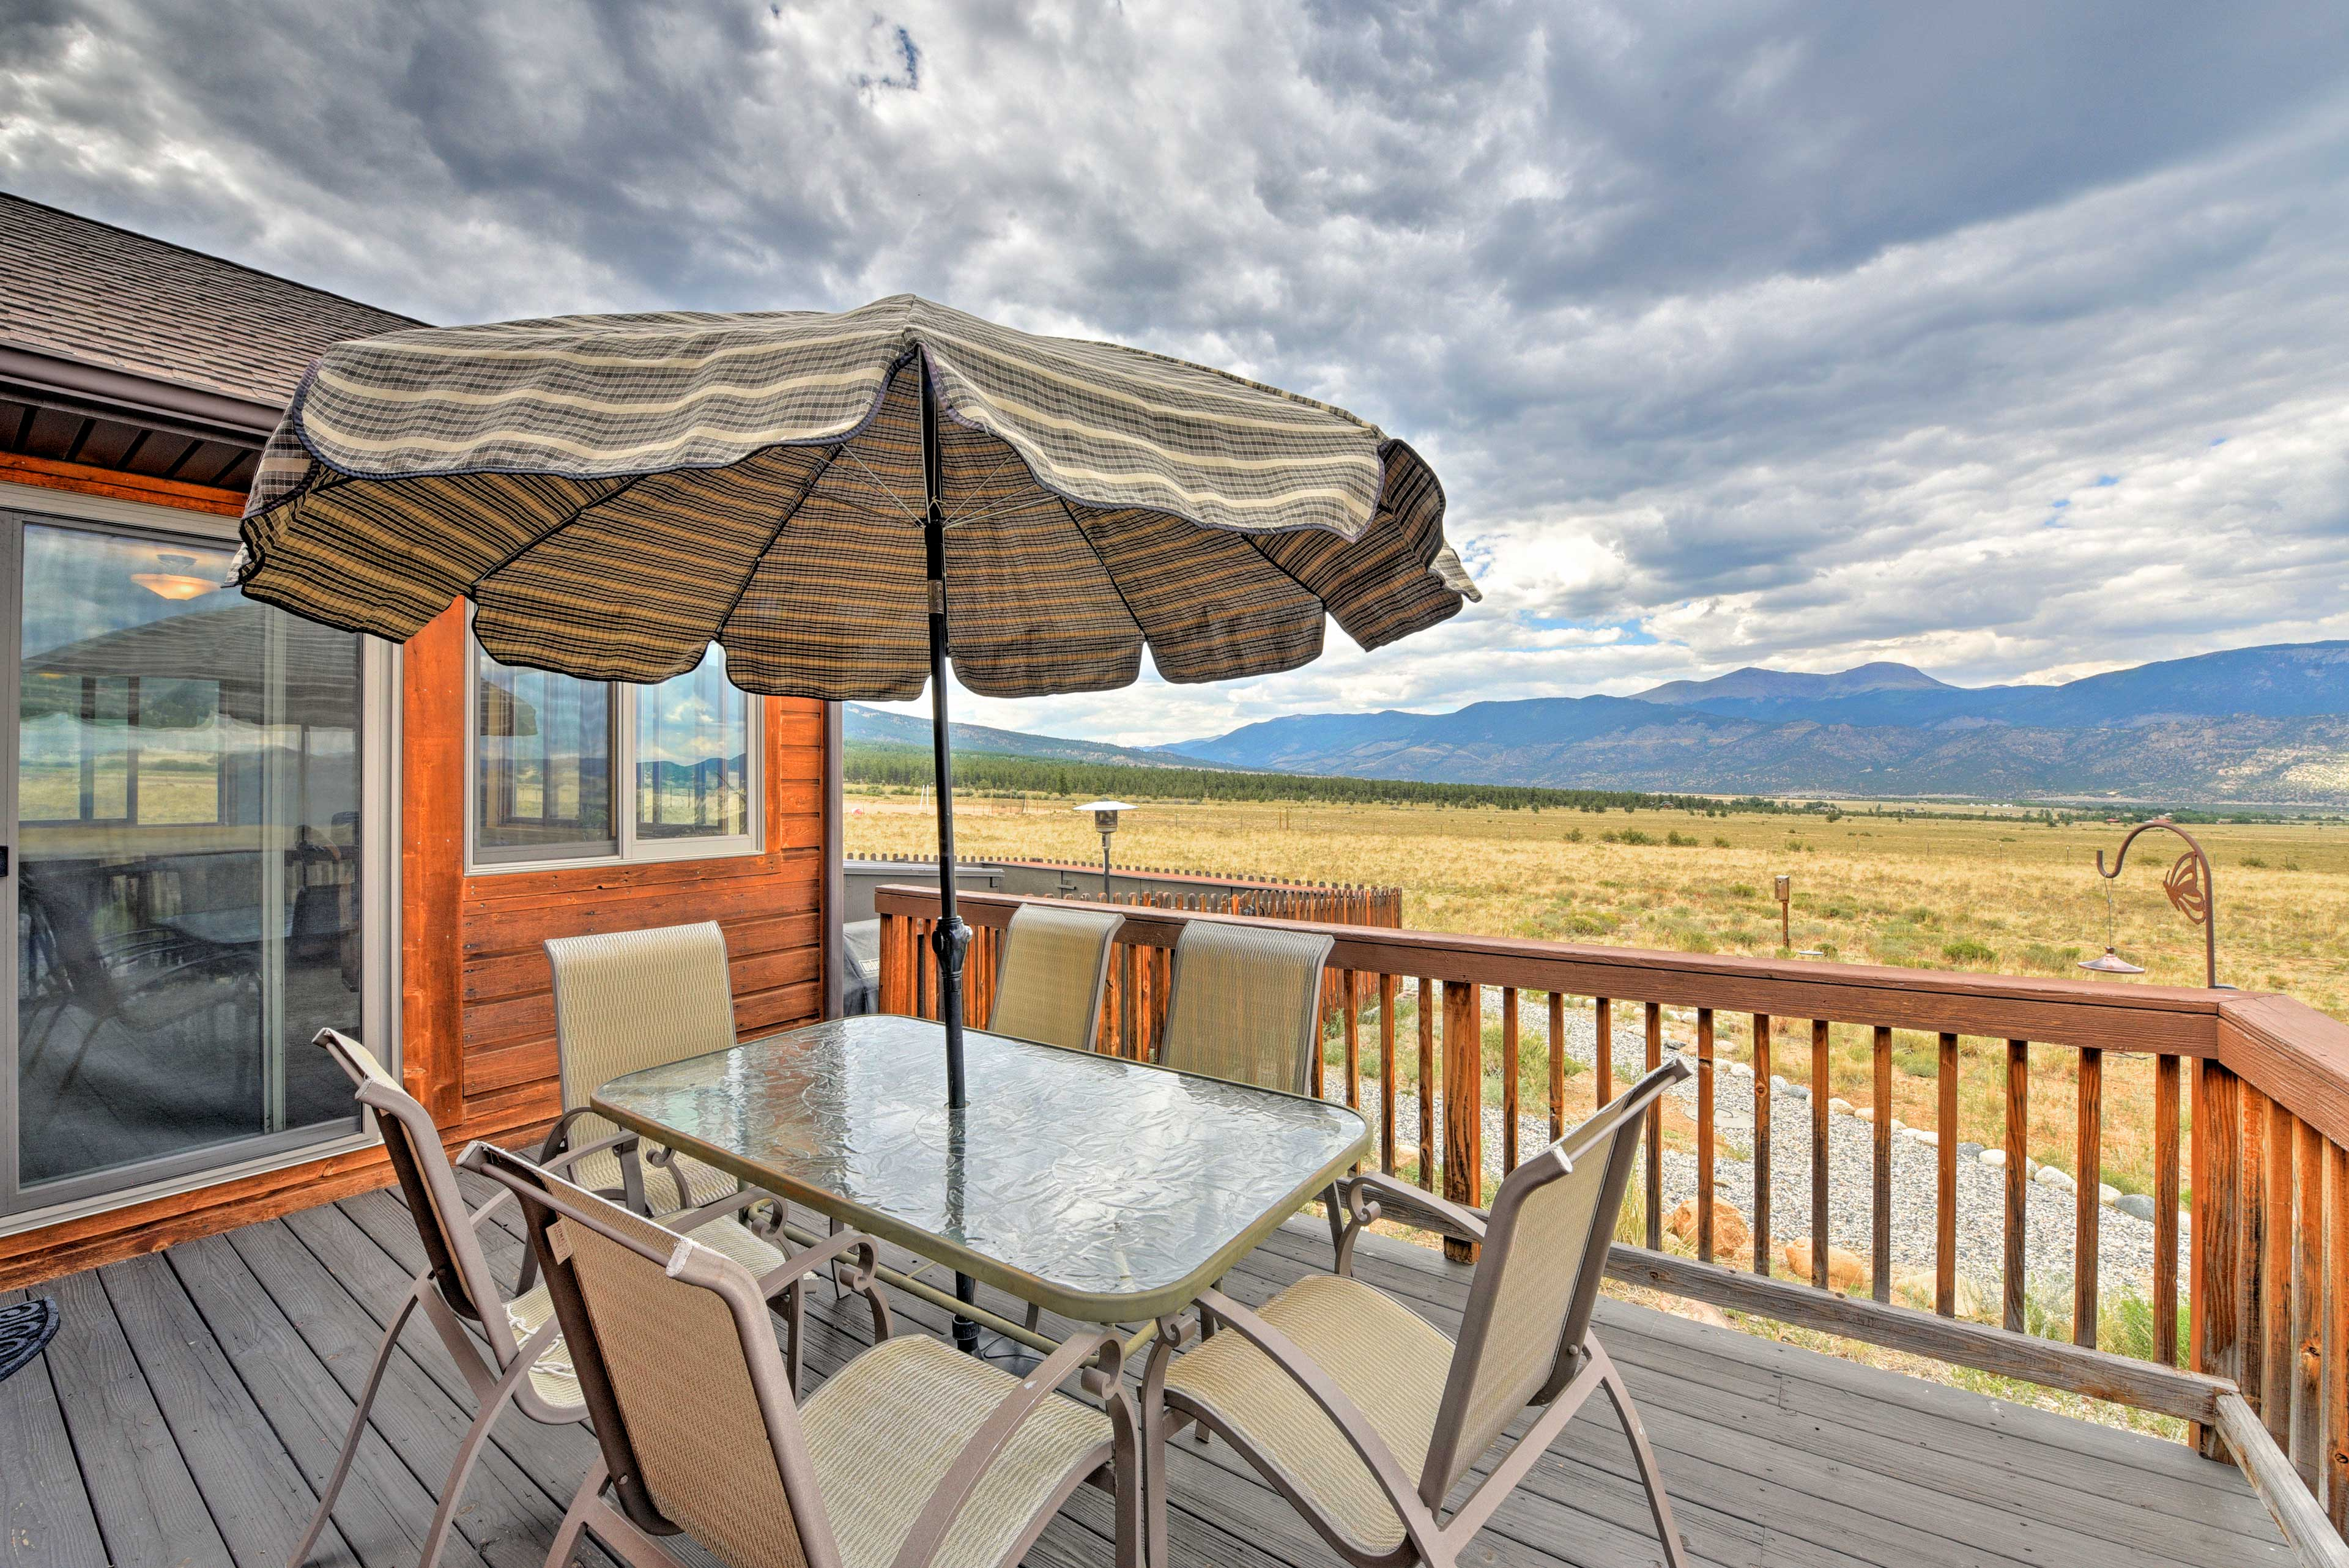 A 360 mountain panorama sets the scene for this Buena Vista vacation rental.